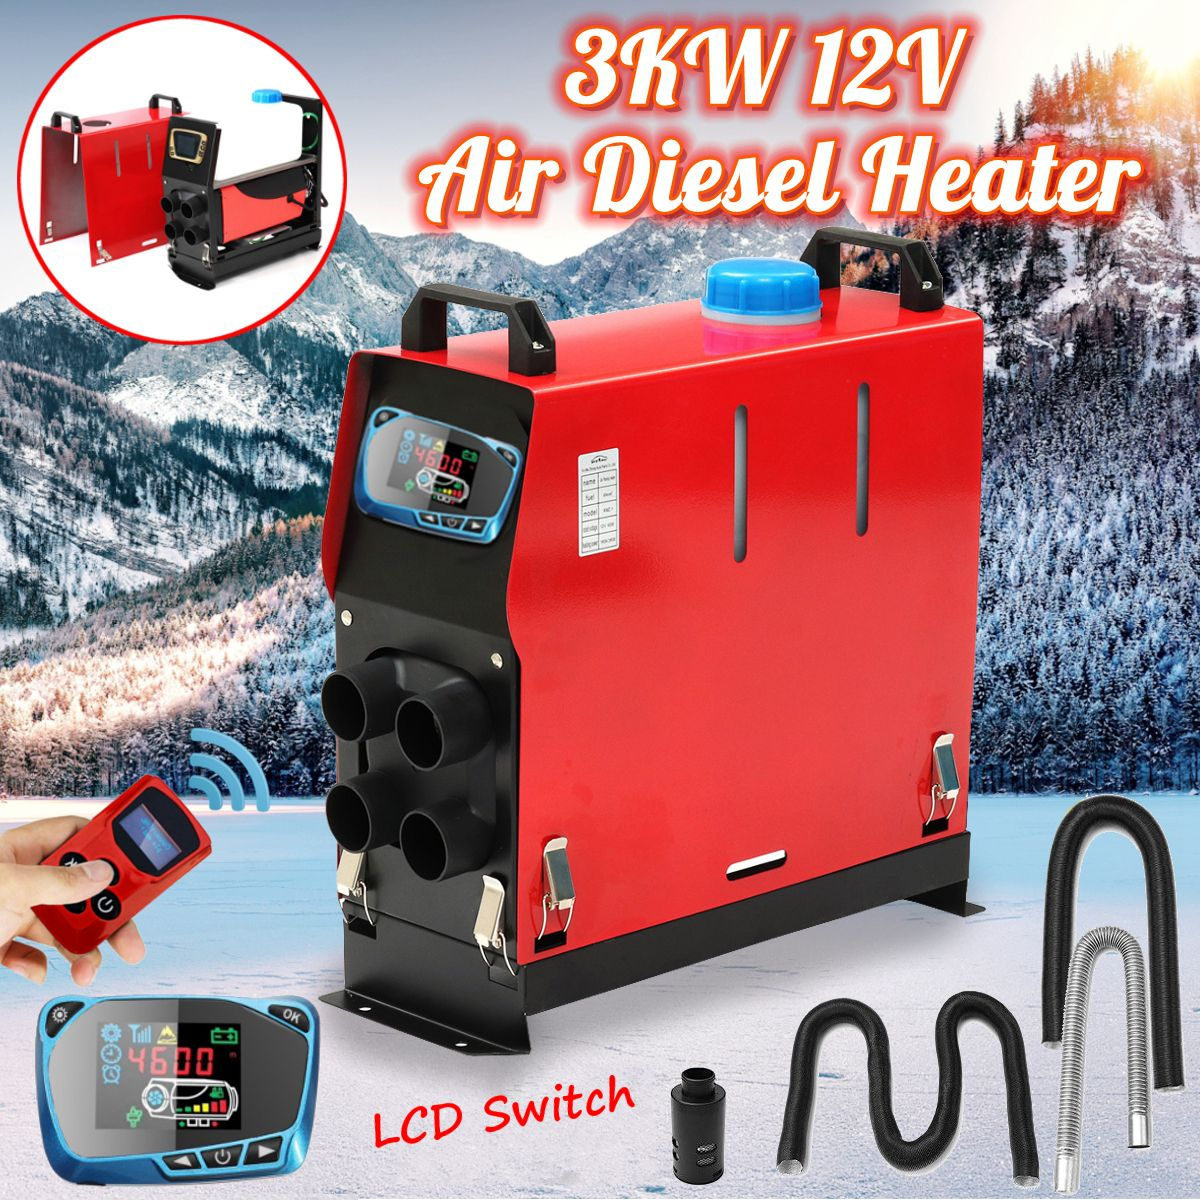 3000W Air diesels Heater 3KW 12V Car Heater For Trucks Motor-Homes Boats Bus +Newest LCD key Switch+Remote control